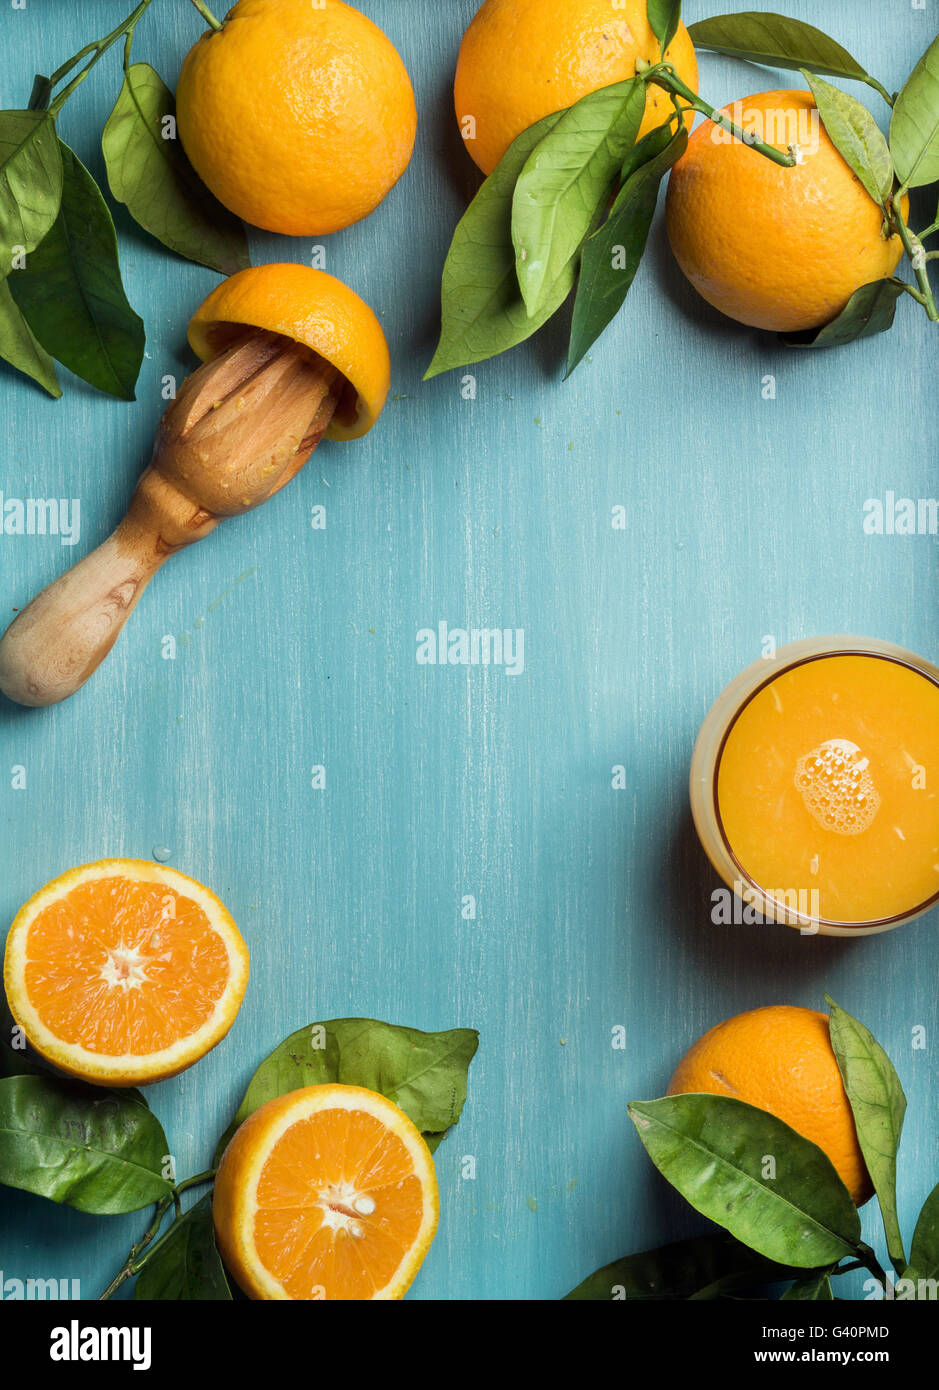 Fresh orange juice in glass and oranges with leaves on wooden turquoise blue painted background. Top view, copy - Stock Image